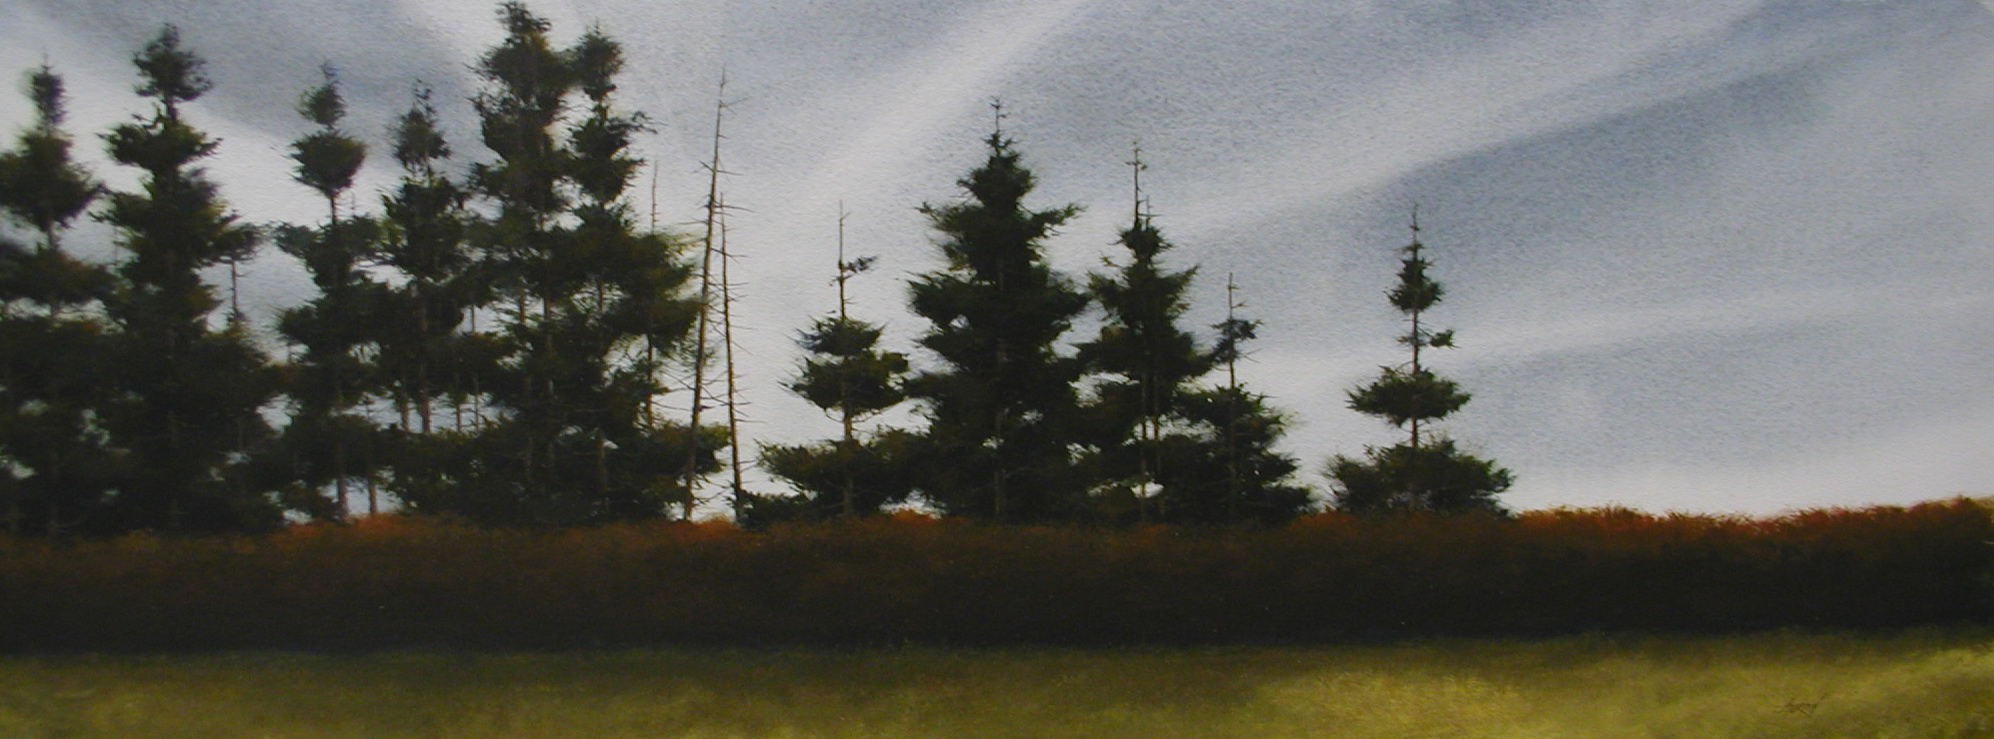 tall pines in the backgound